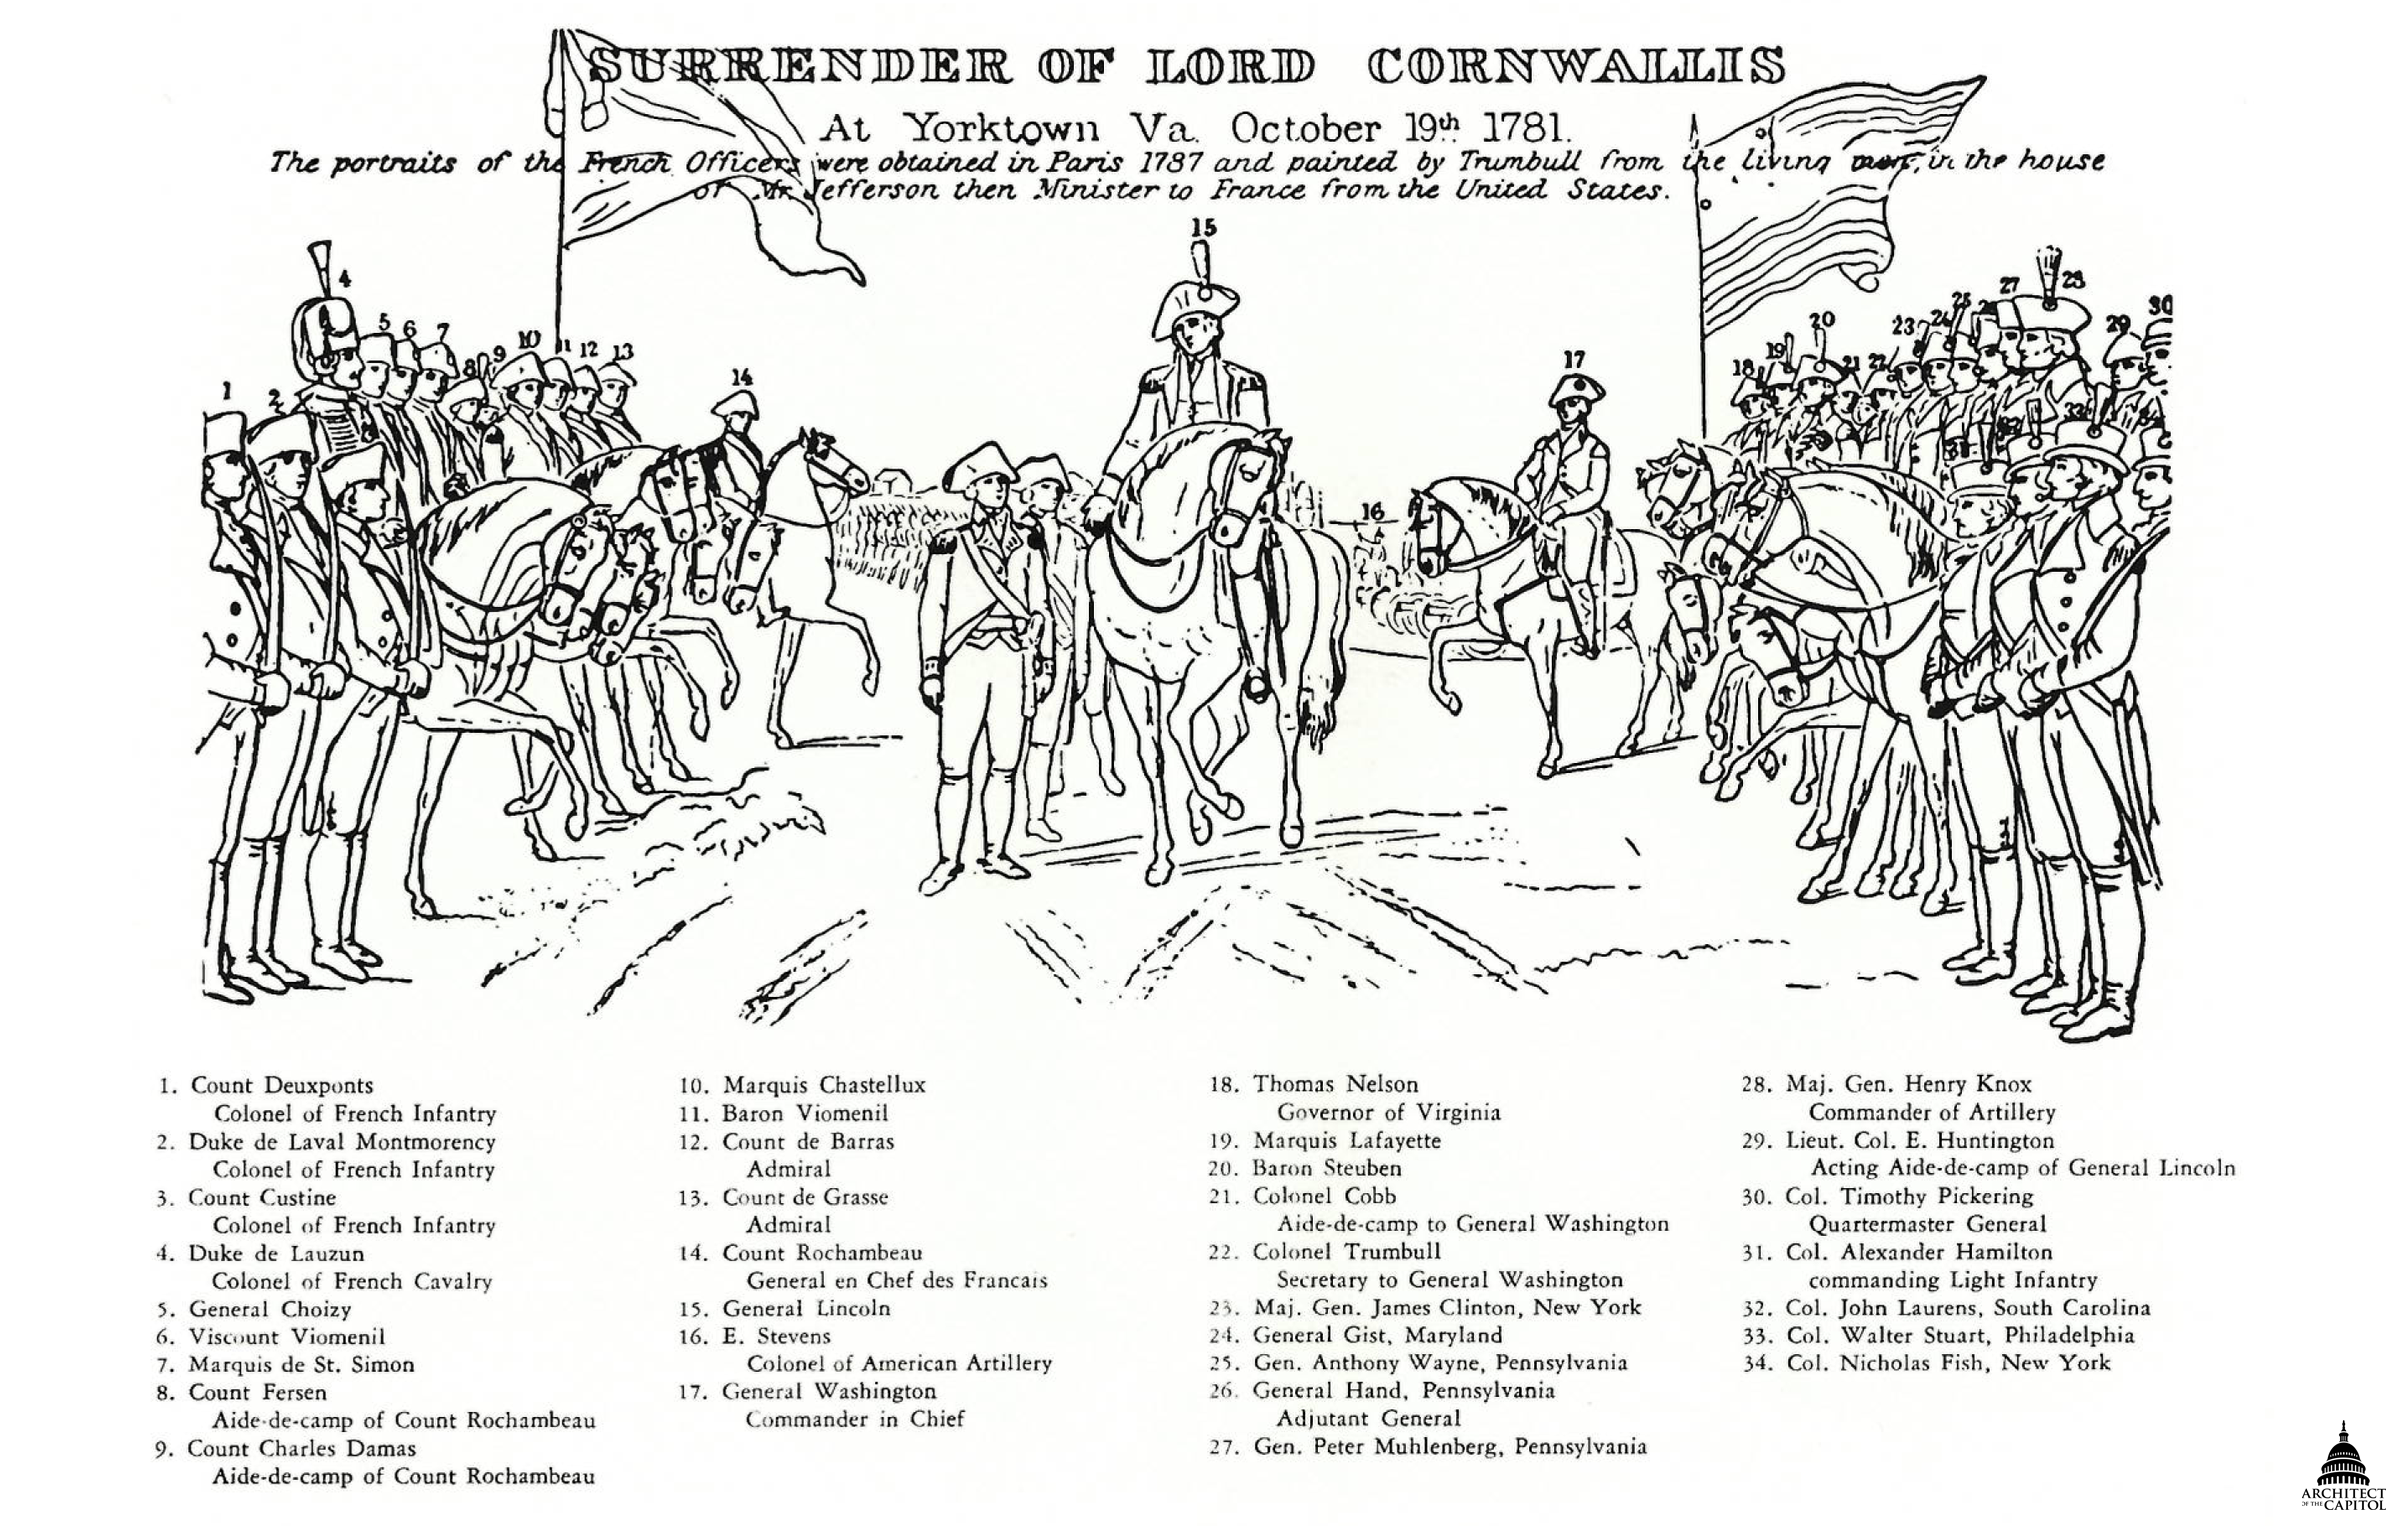 Key to the Surrender of Lord Cornwallis painting in the U.S. Capitol Rotunda.